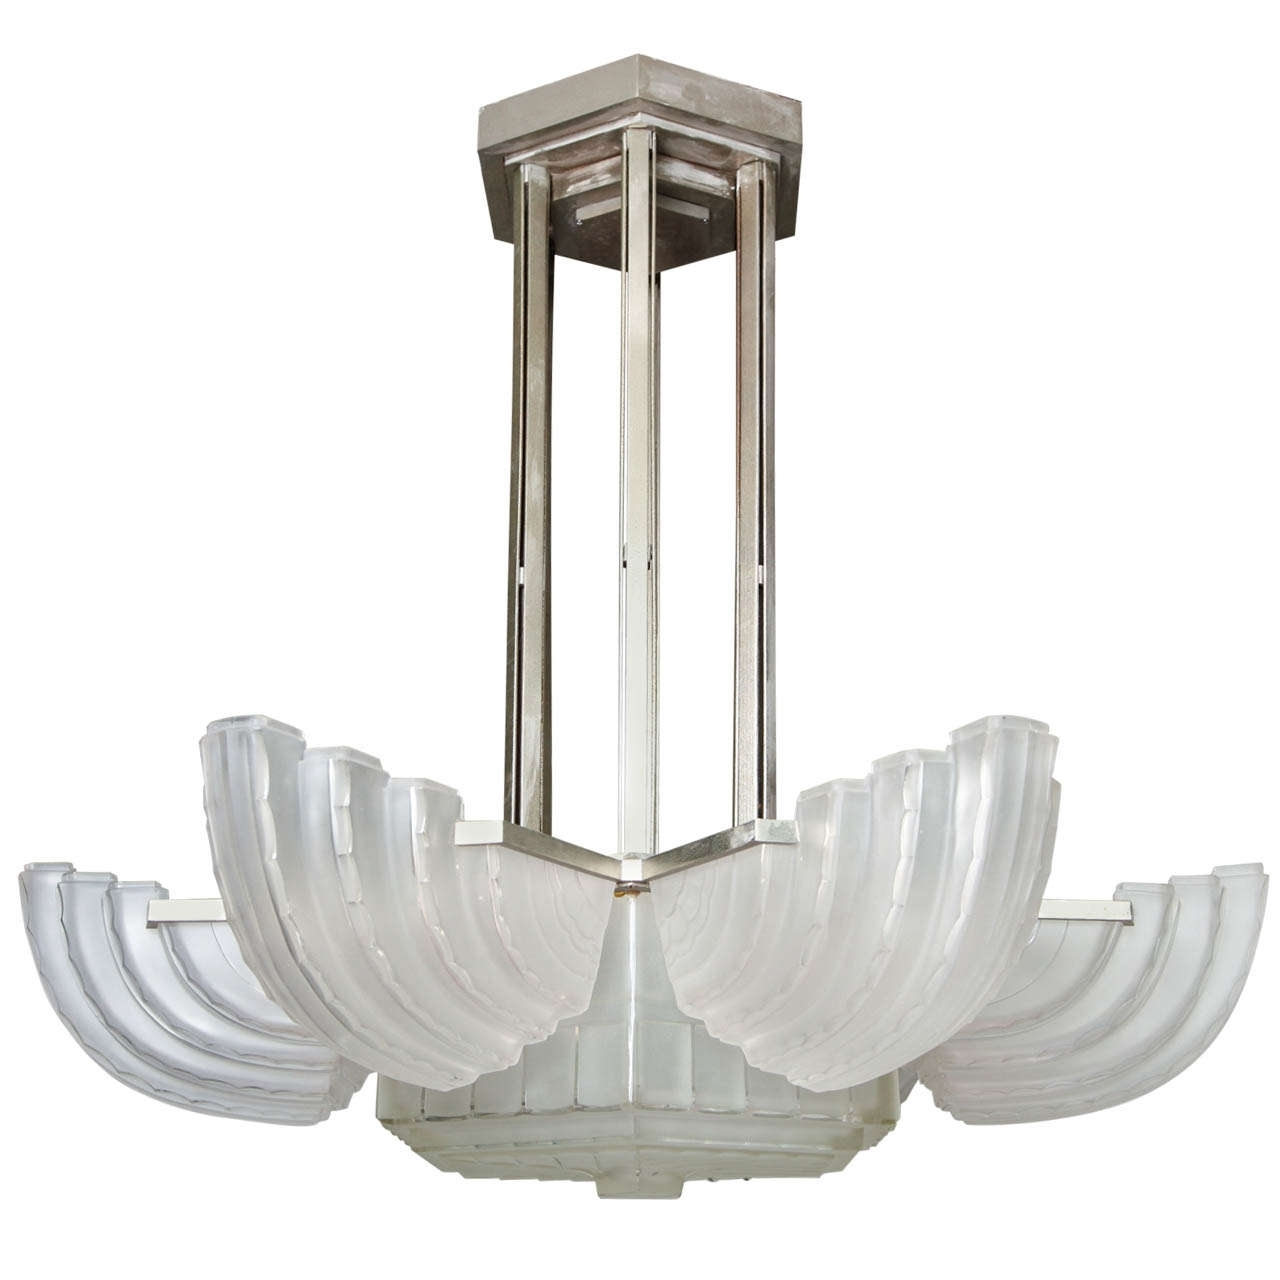 Most Current Large Art Deco Chandelier Inside Large And Important Art Deco Chandeliersabino – Paul Stamati Gallery (View 4 of 20)